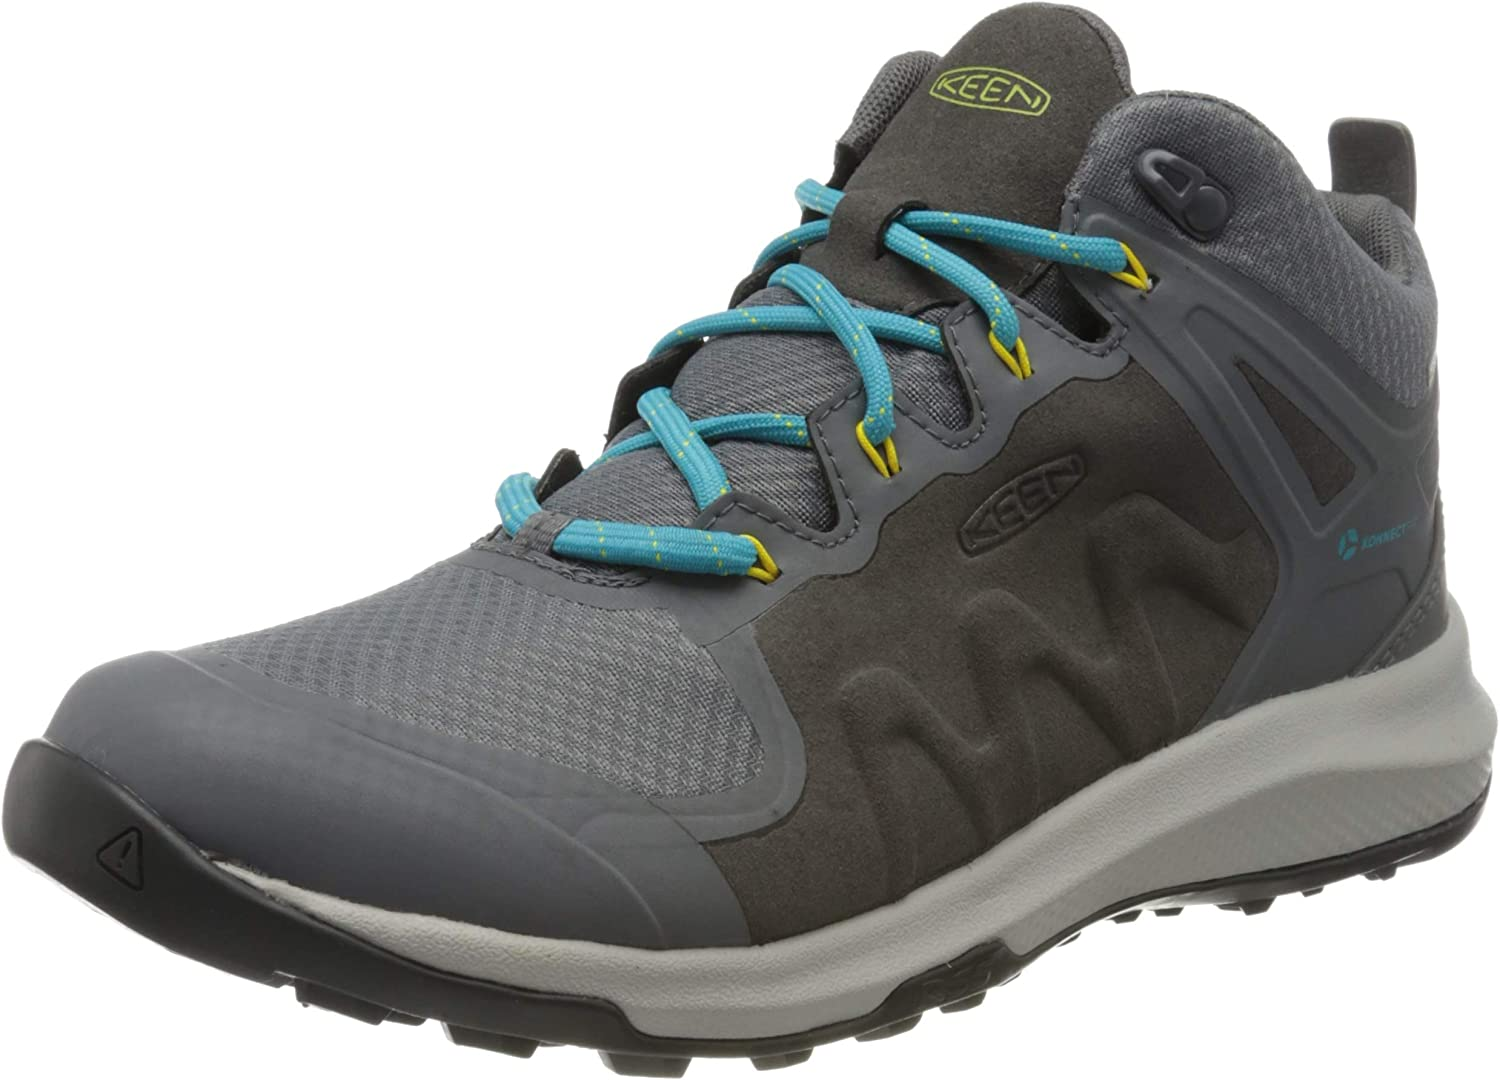 Keen Men s Targhee II WP Mid Wide Hiking Boot